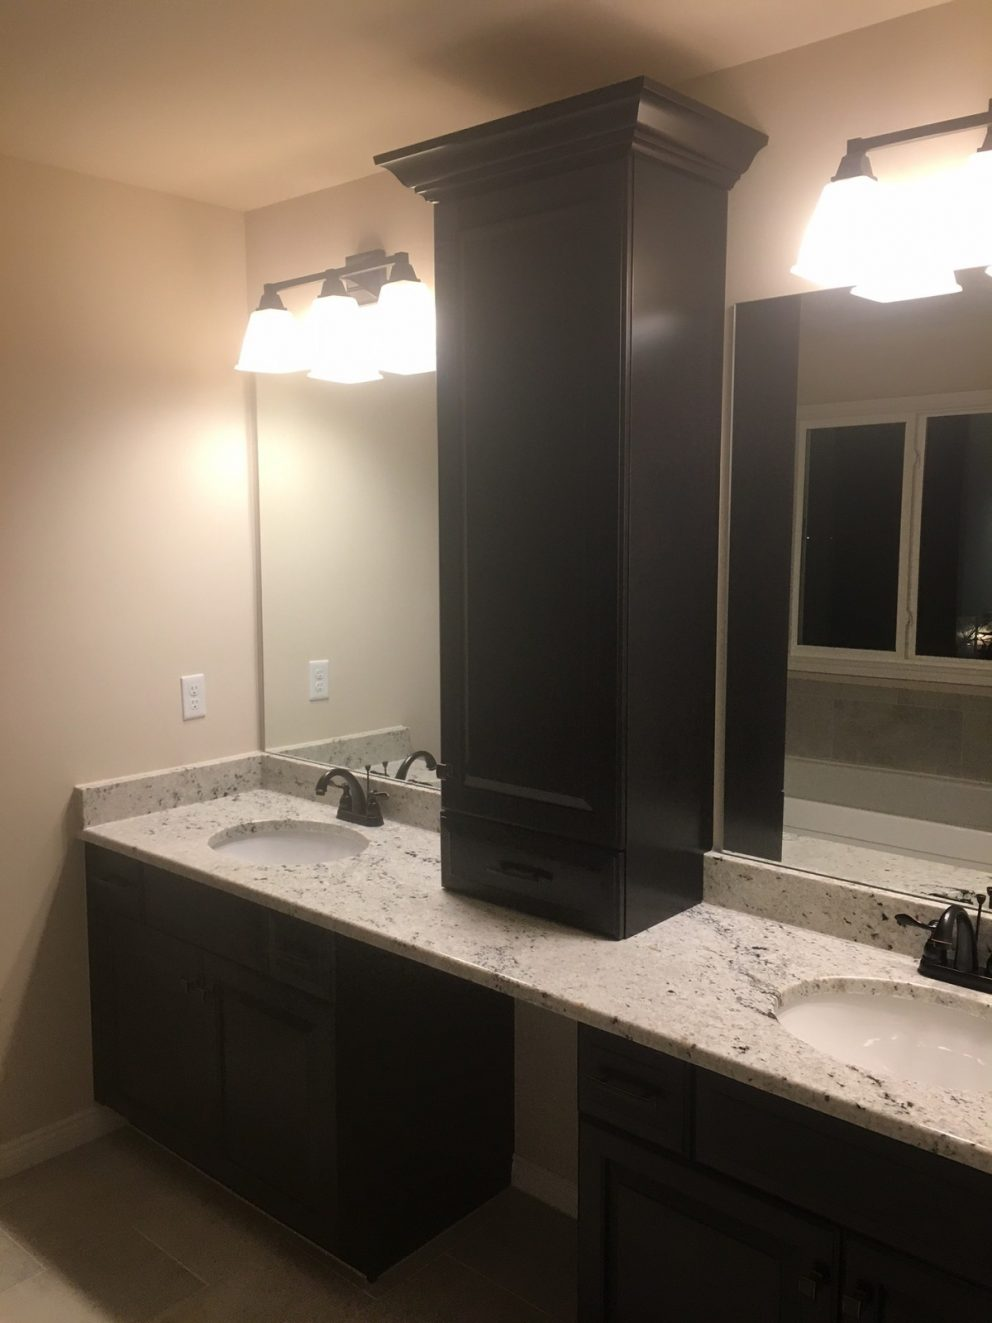 Master bath with his and her sinks and tower cabinet